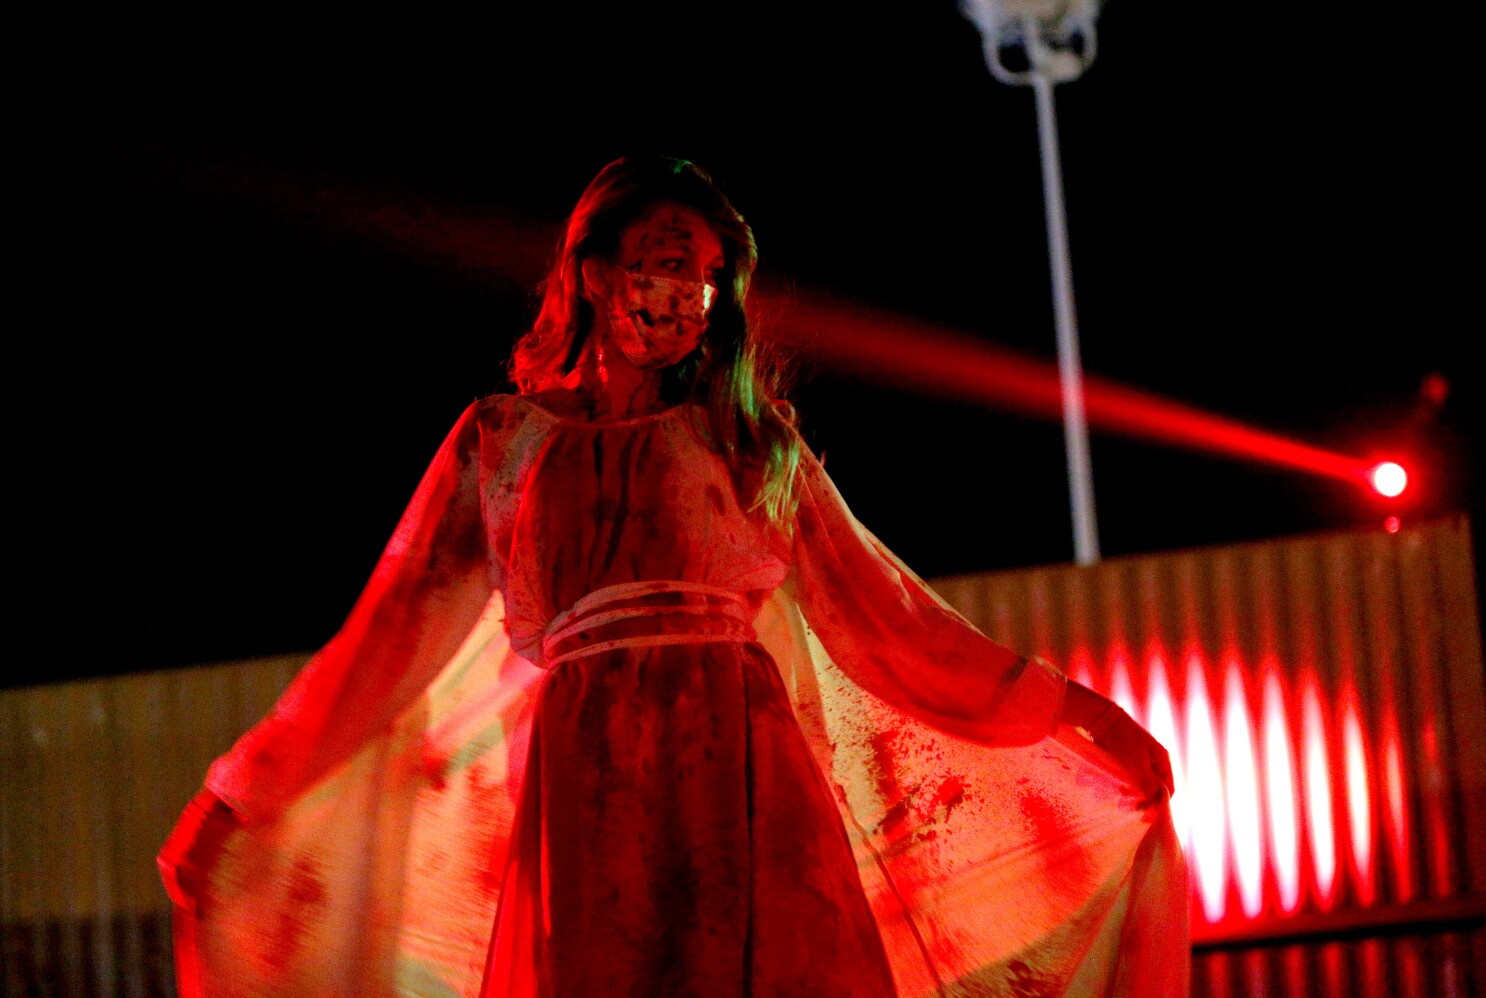 Oc Halloween Events 2020 Drive through haunt at Orange County fairgrounds may save